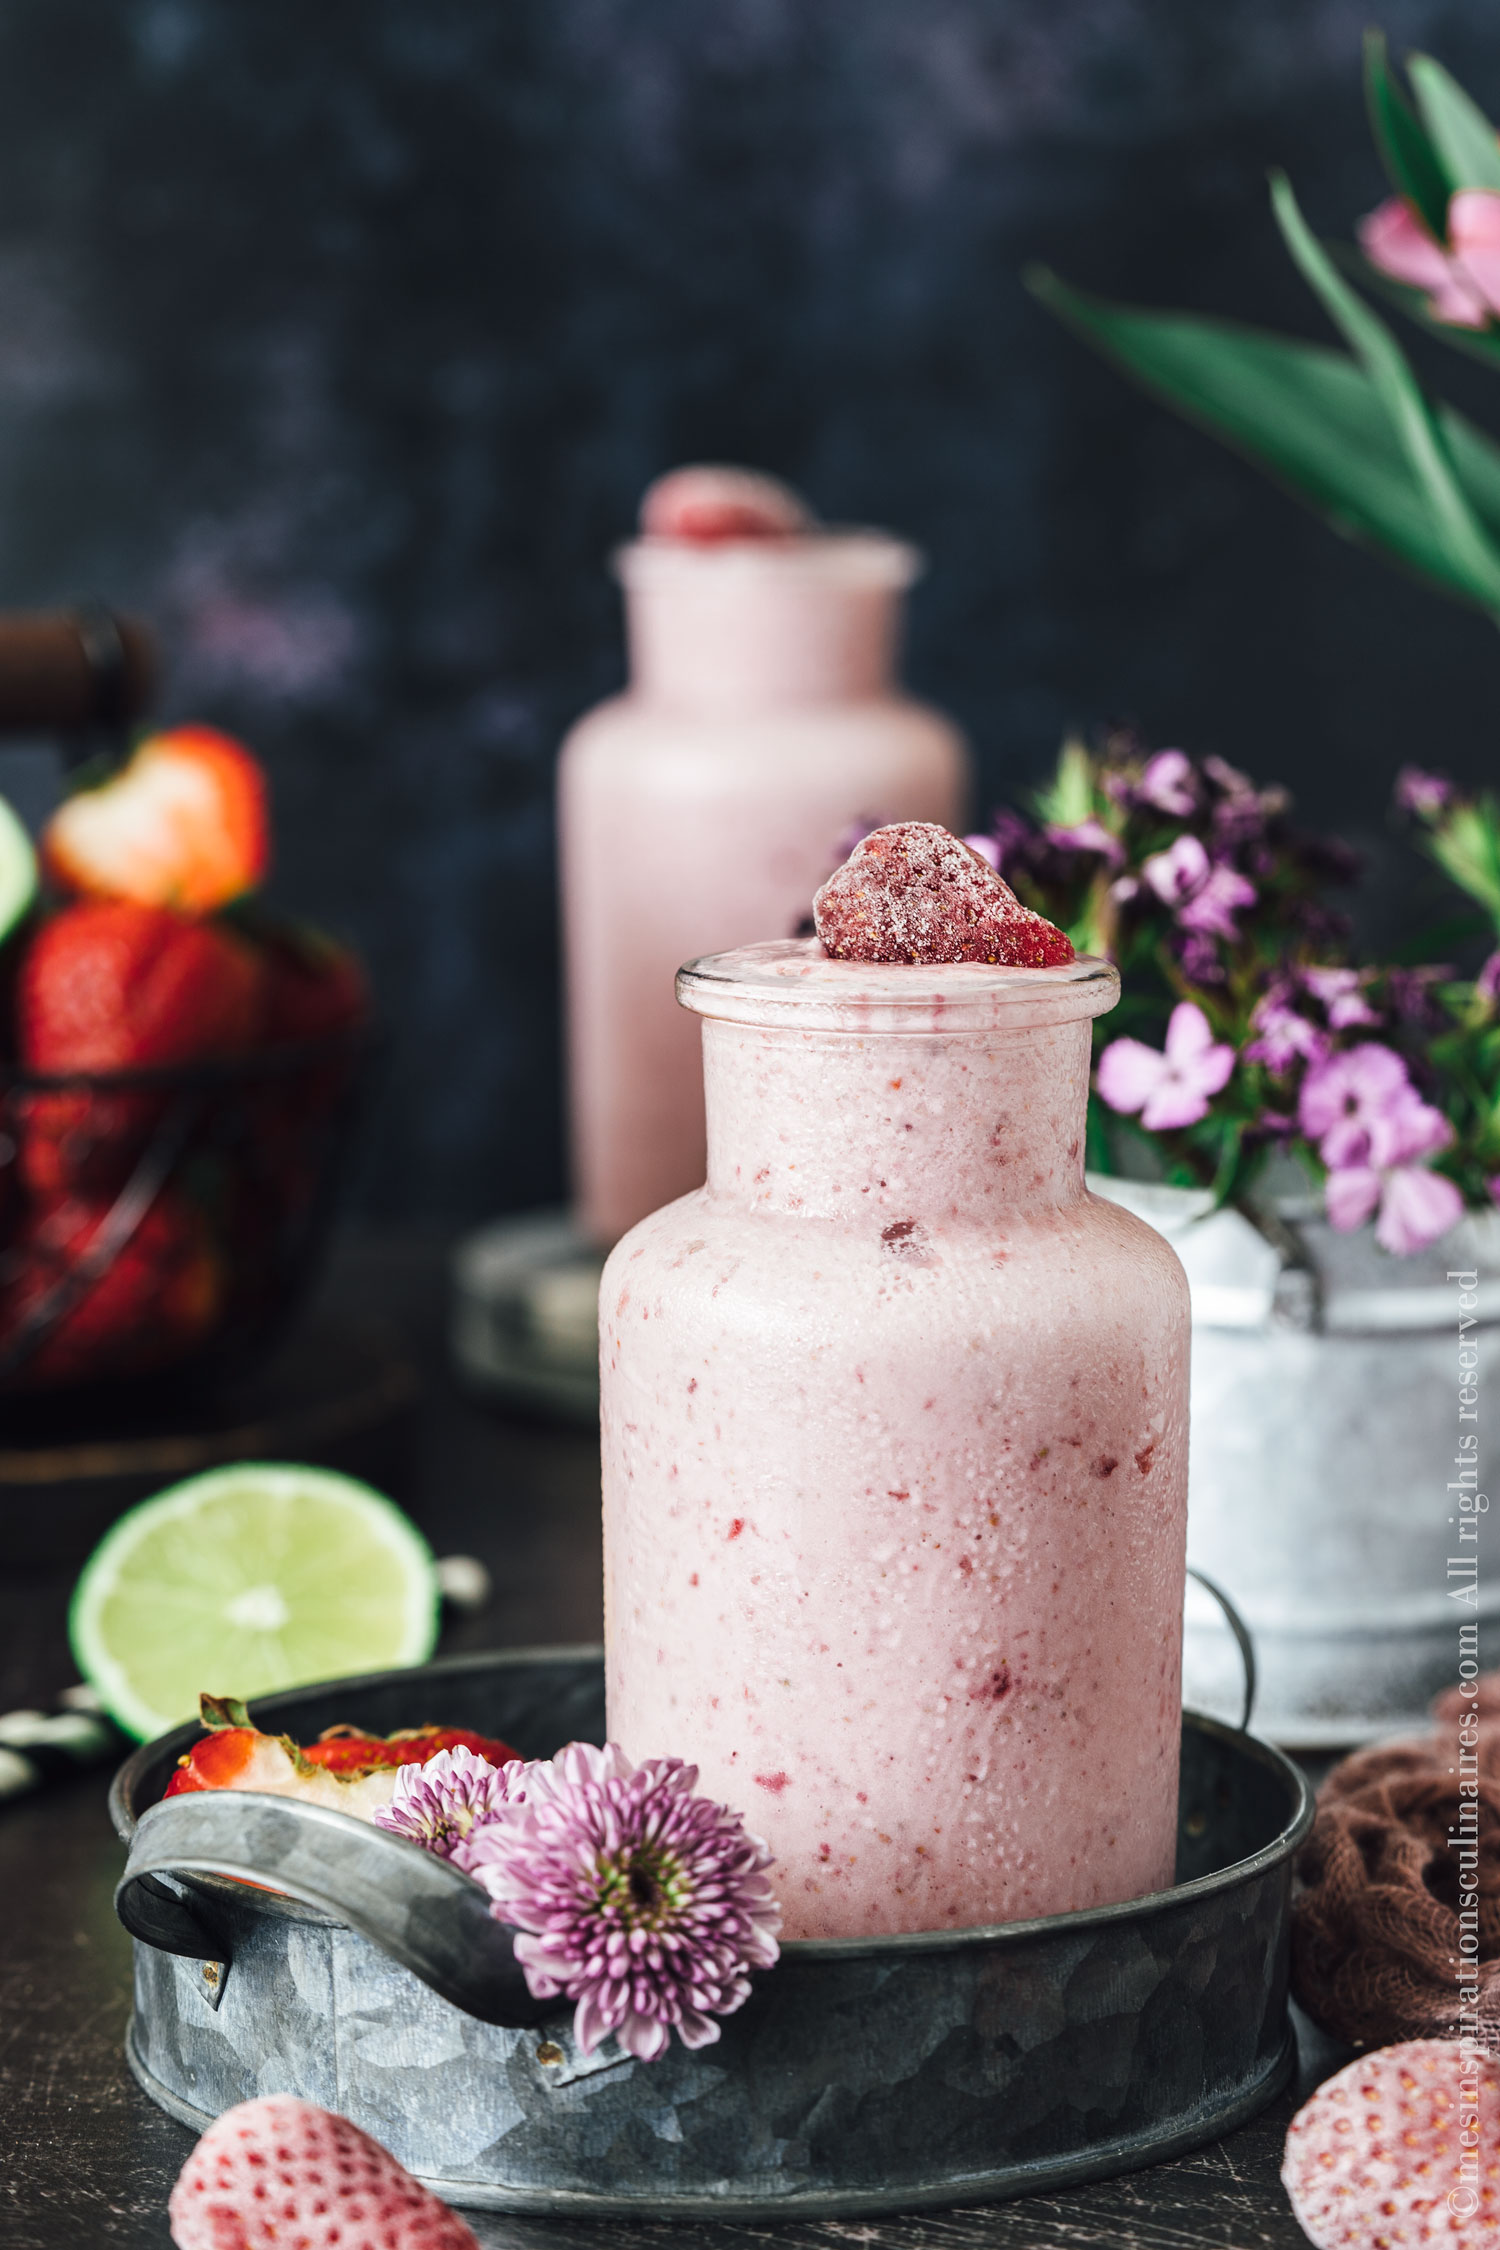 Smoothie fraise rhubarbe, recette facile